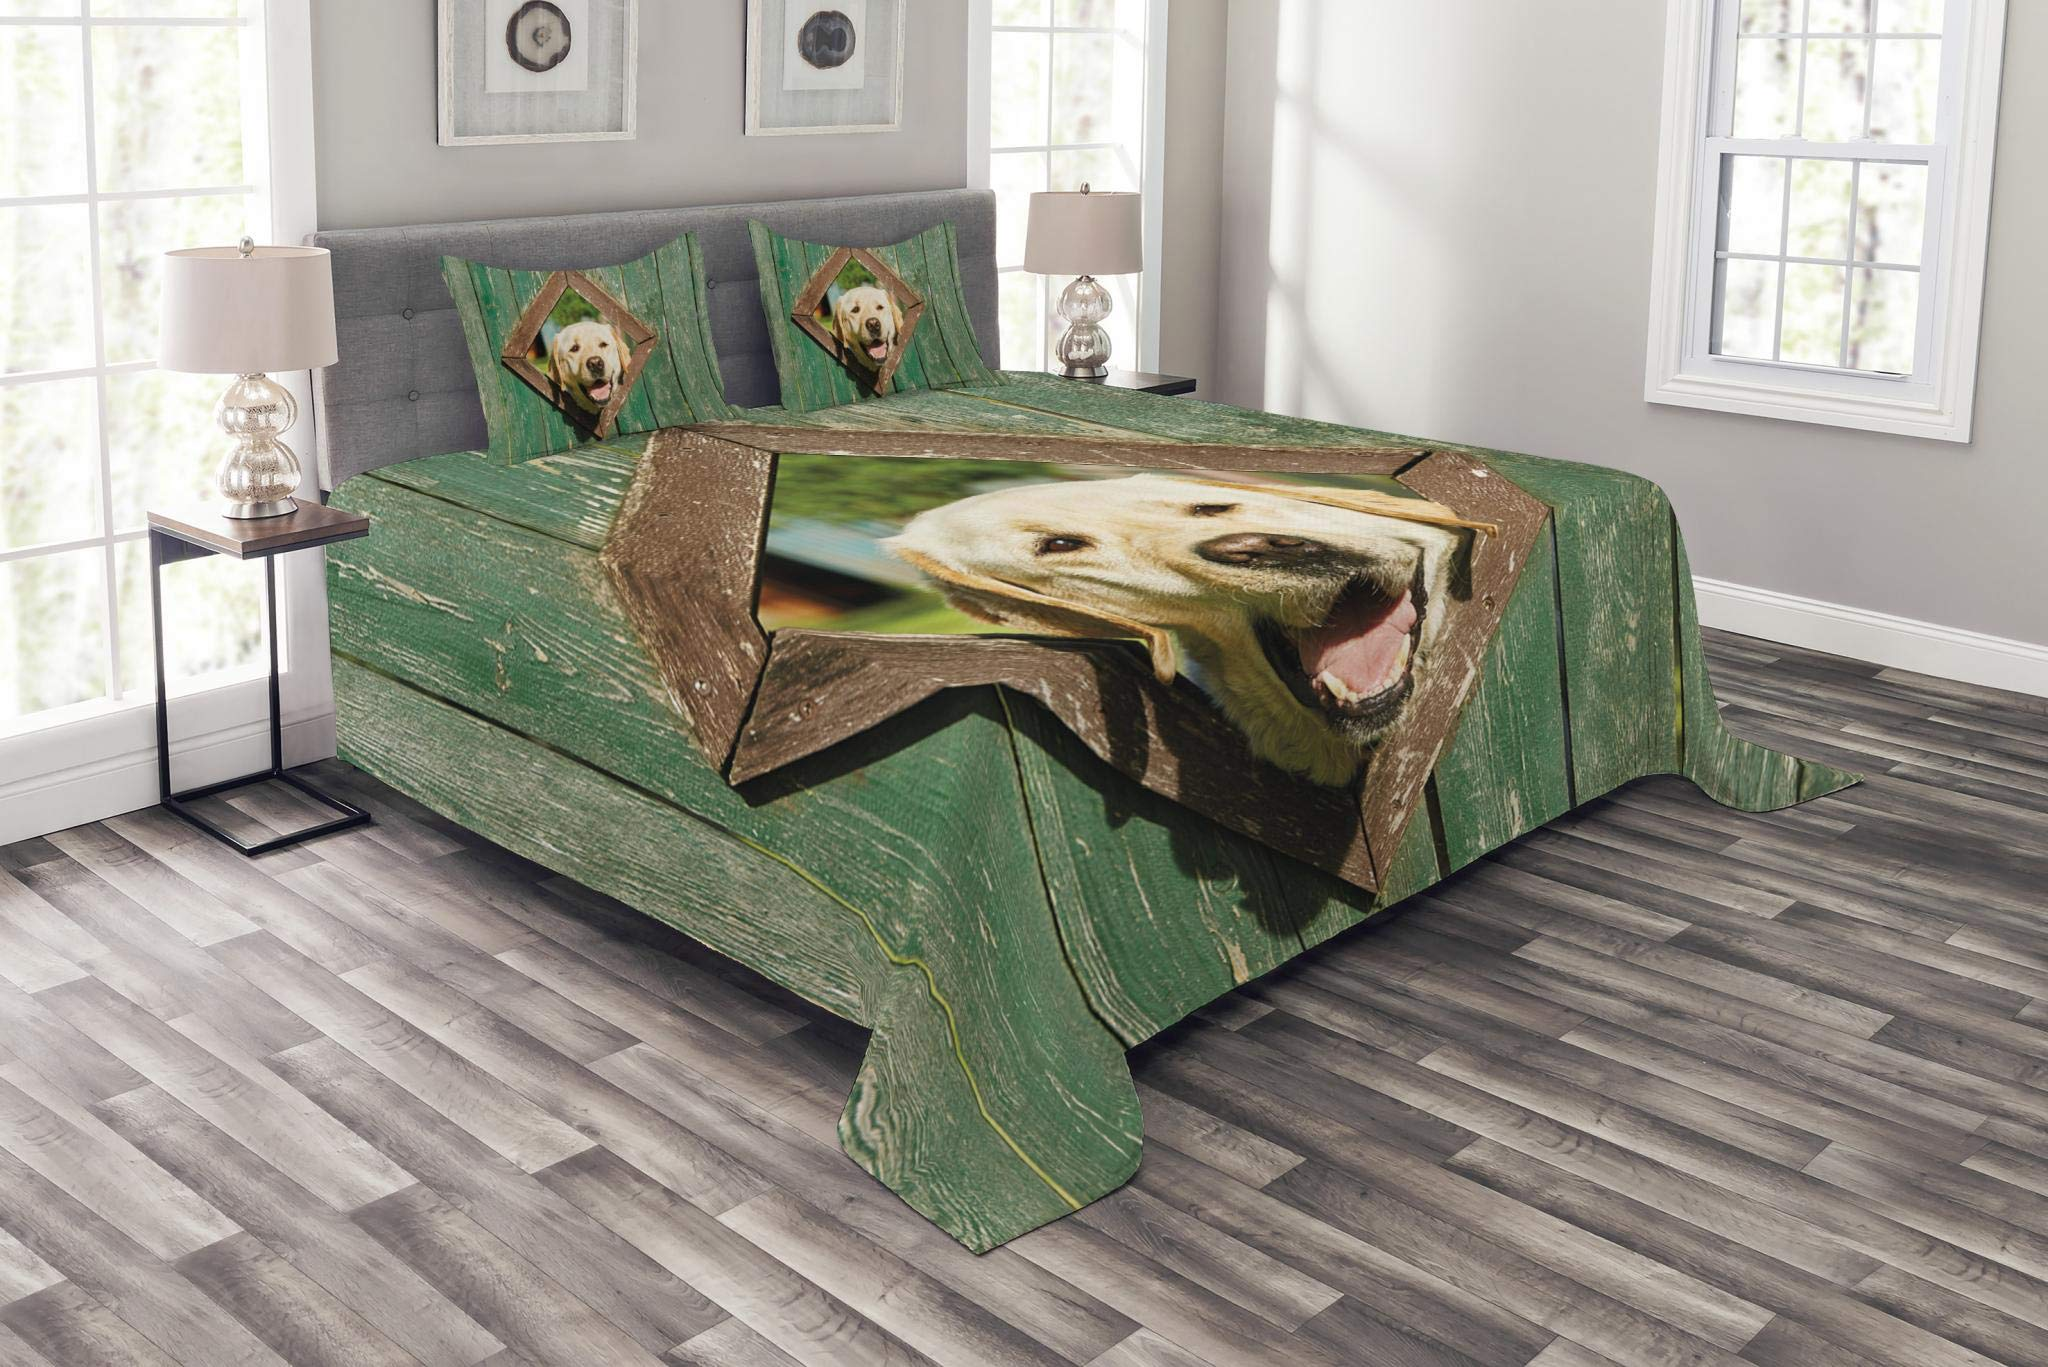 Lunarable Funny Bedspread Set King Size, Curious Dog is Looking from Window in Old Rustic Wooden Fence Cheerful Print, Decorative Quilted 3 Piece Coverlet Set with 2 Pillow Shams, Forest Green Brown